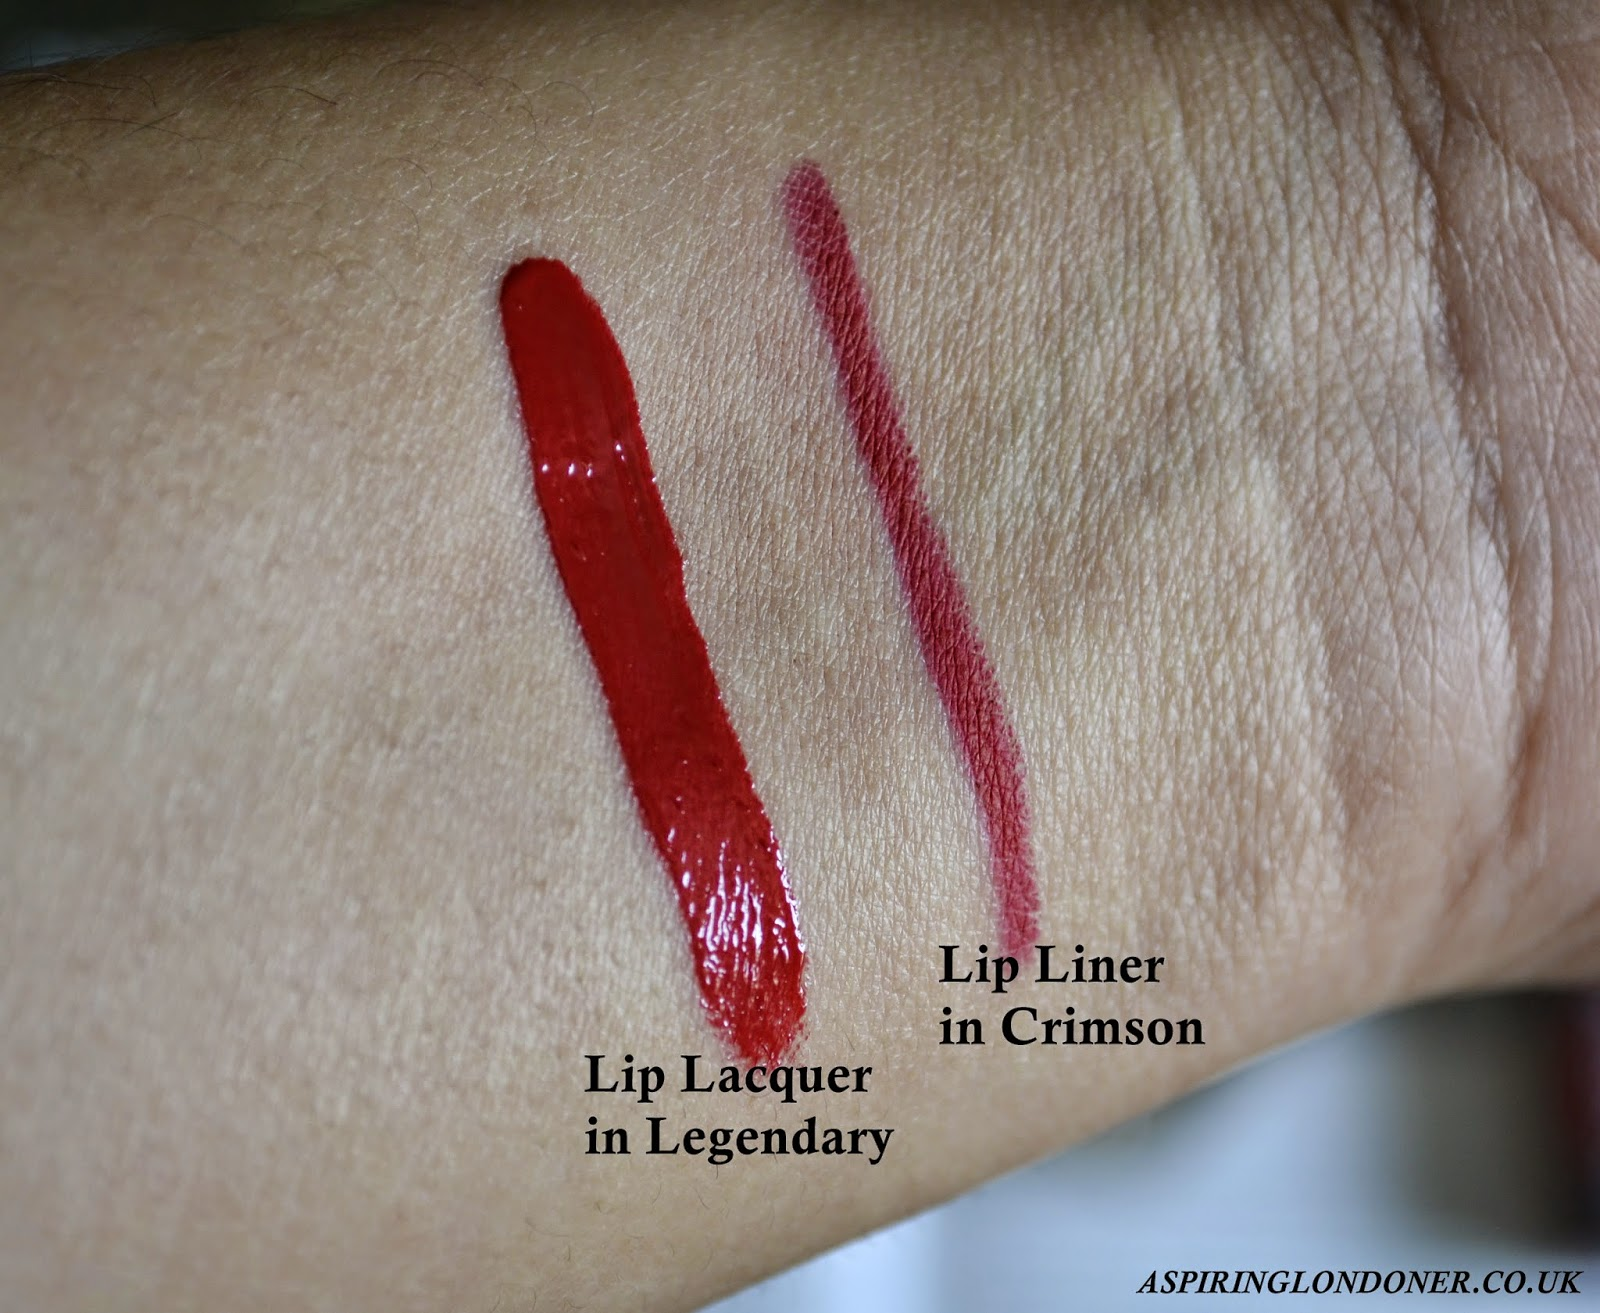 Smashbox Lip Lacquer Legendary Swatch & Lip Liner Crimson Swatch - Aspiring Londoner